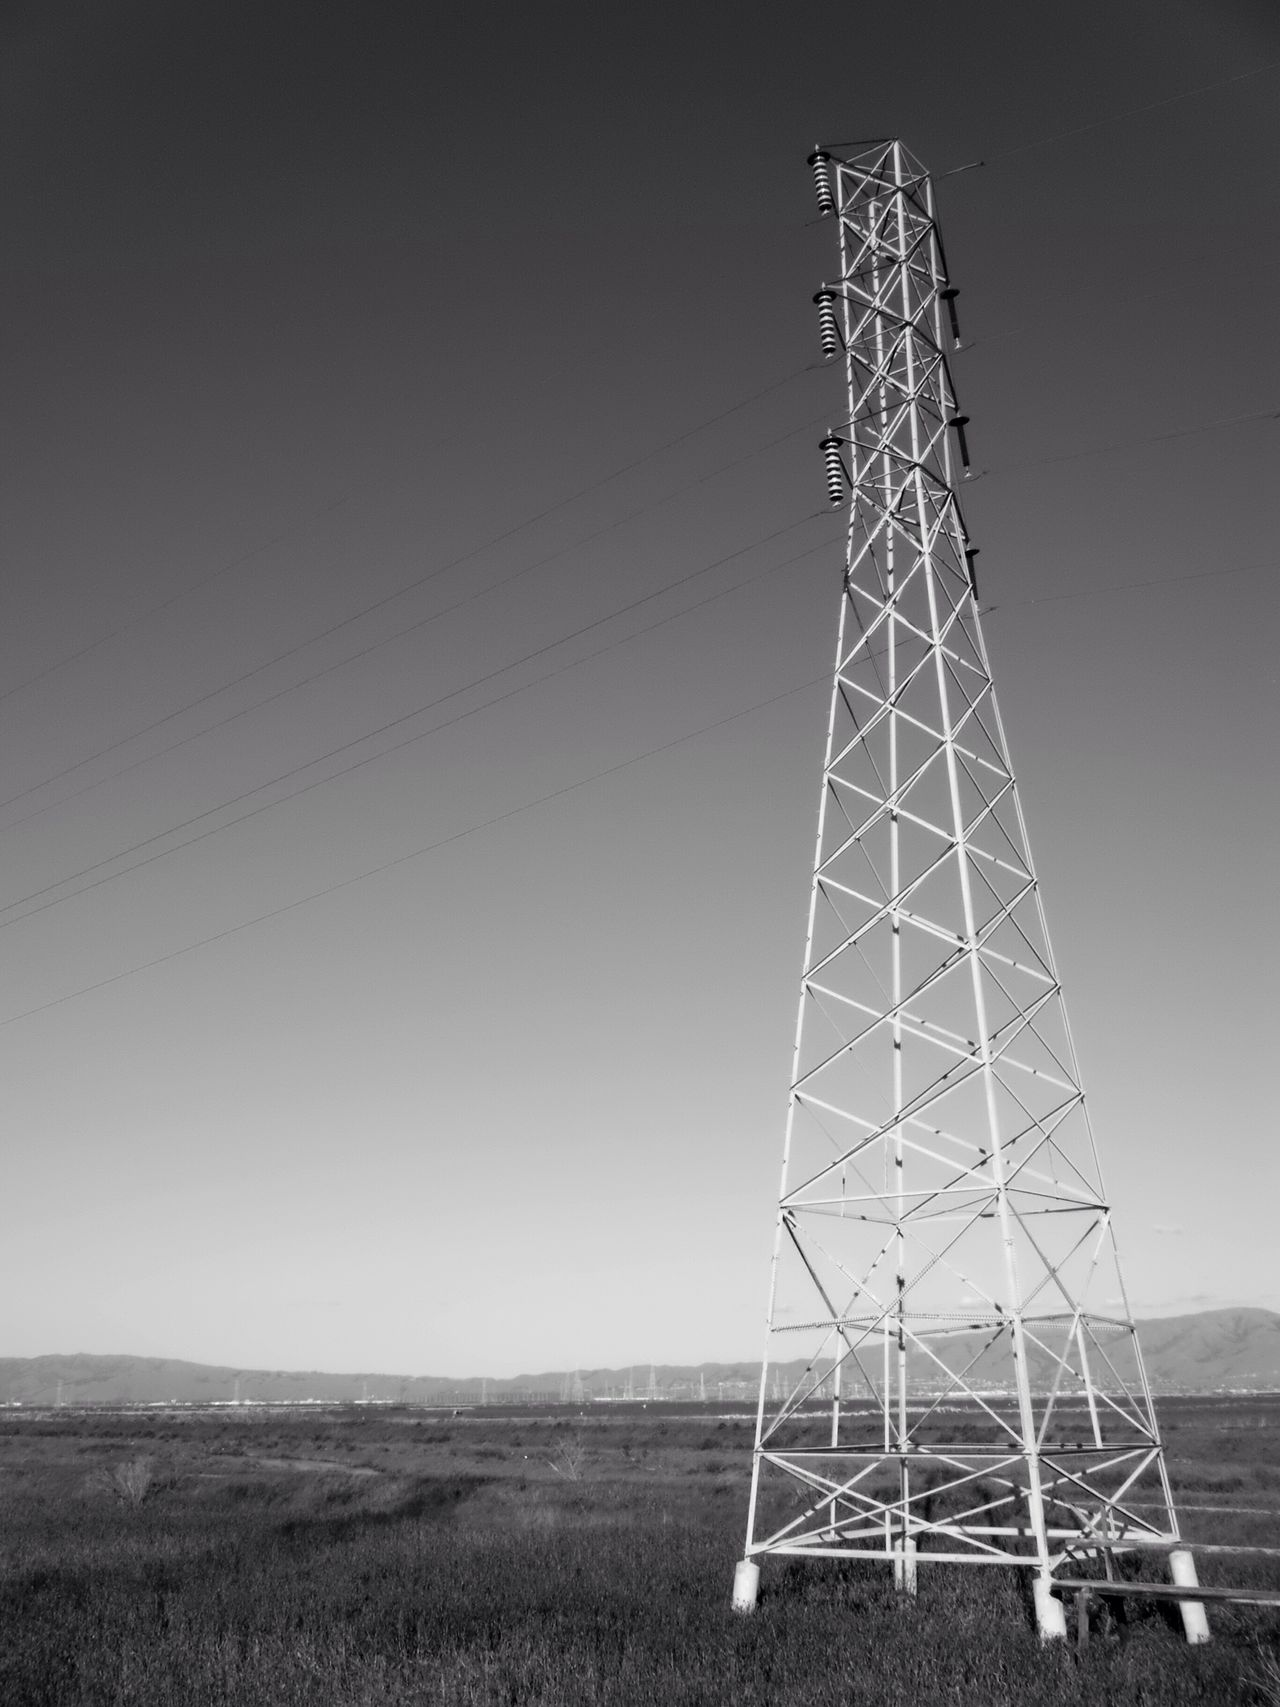 rise above the marsh Black And White Blackandwhite Clear Sky Electricity  Low Angle View Field Cable No People Power Line  Day Electricity Pylon Technology Landscape Grass Sky Outdoors Nature Marsh Wetlands San Francisco Bay California No Budget Photography